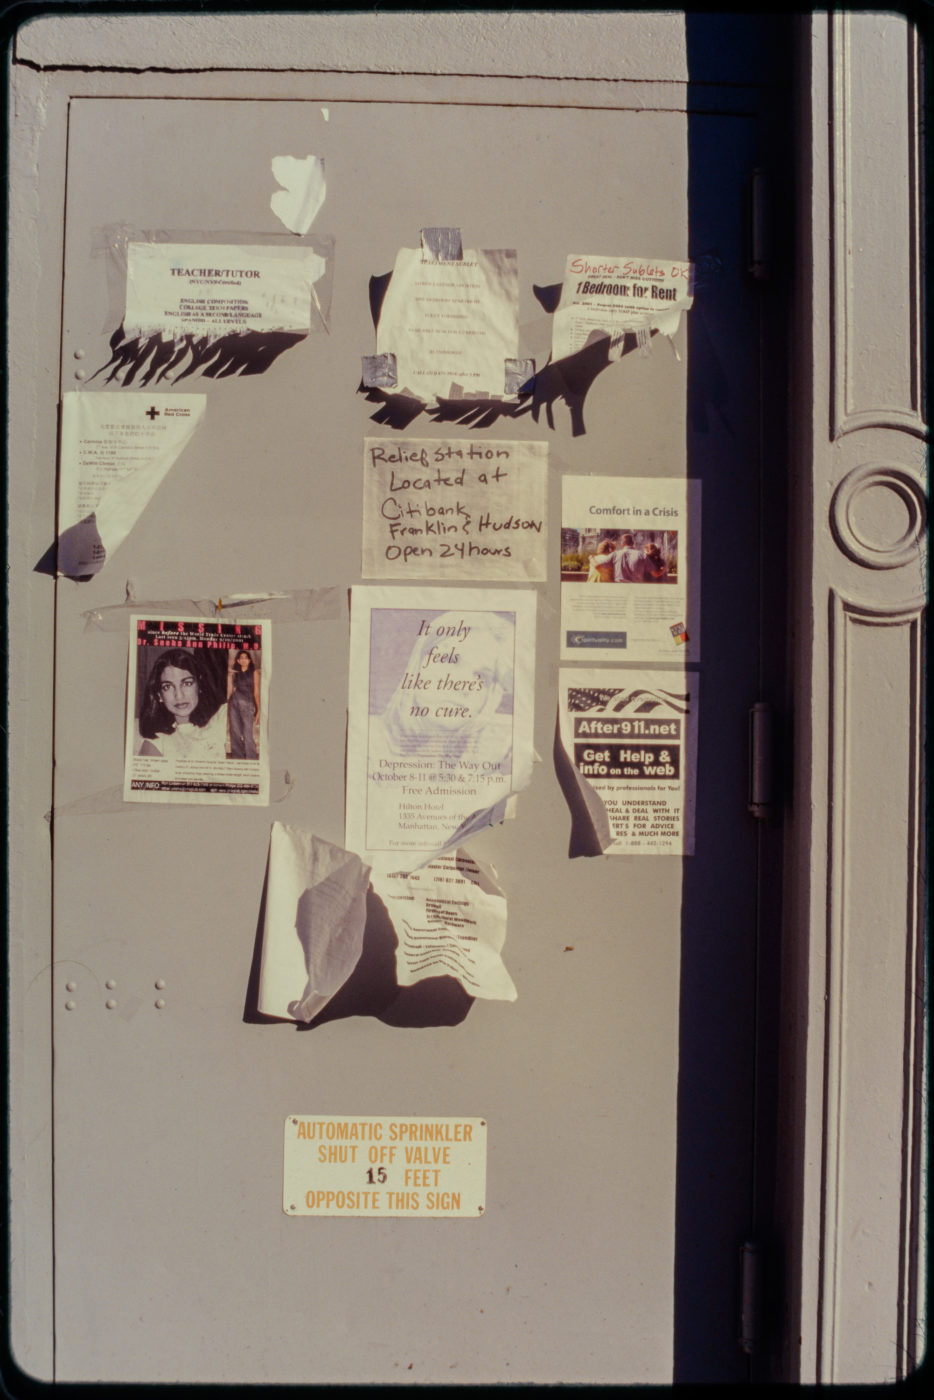 Missing Persons, Relief Station, and Support Groups Advertised on Wall.jpg